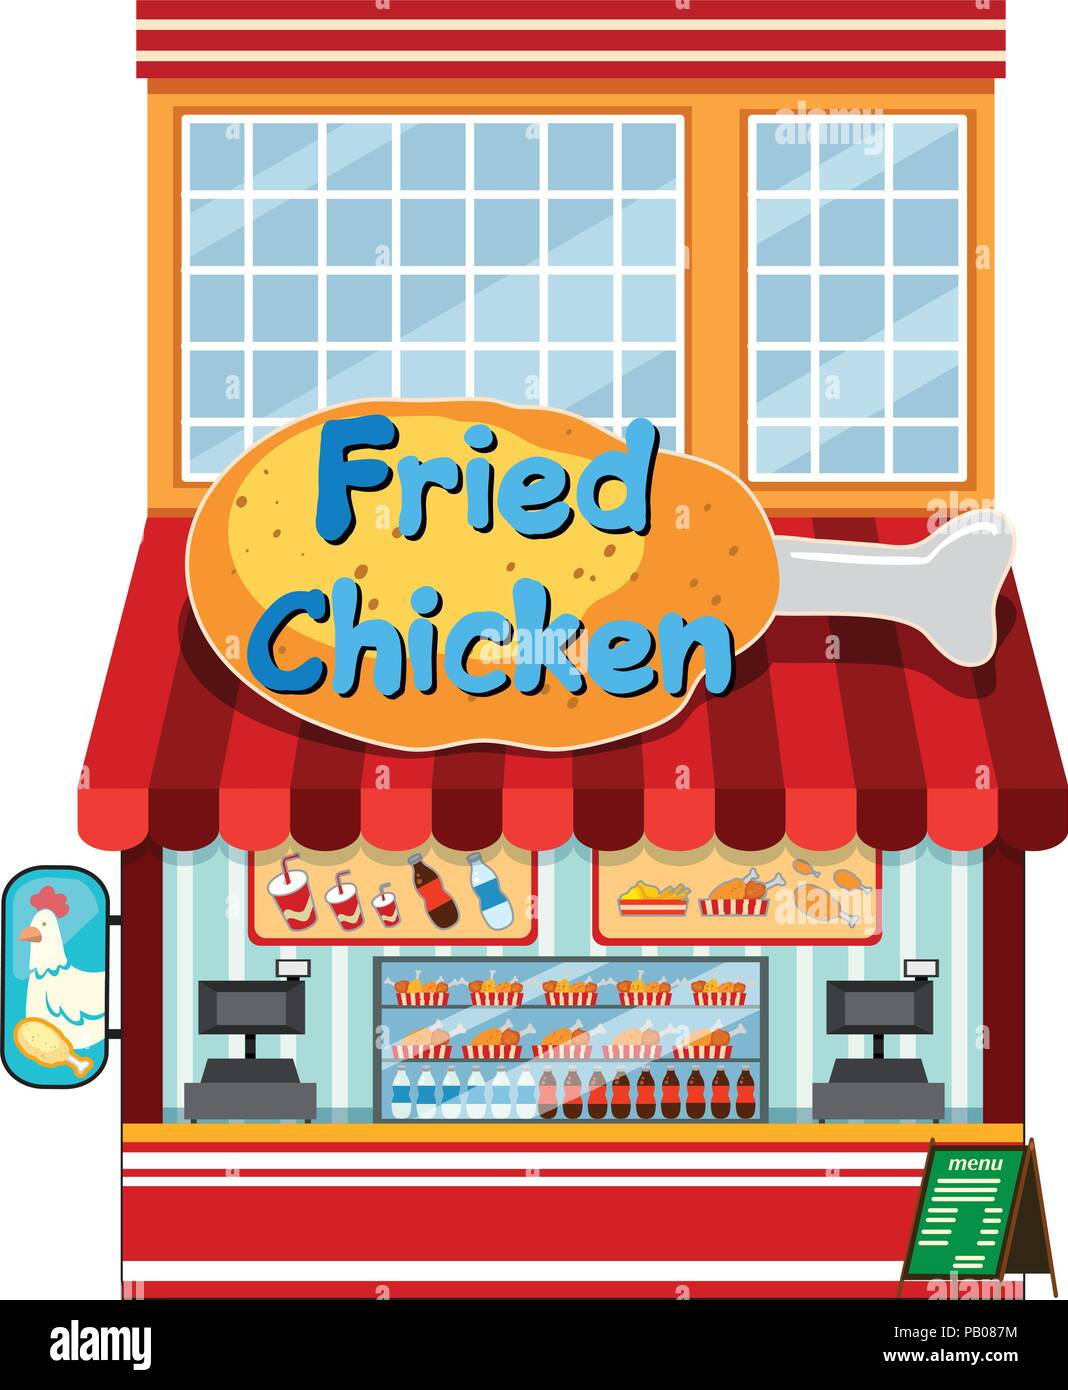 A Fried Chicken Restaurant Illustration Stock Vector Image Art Alamy